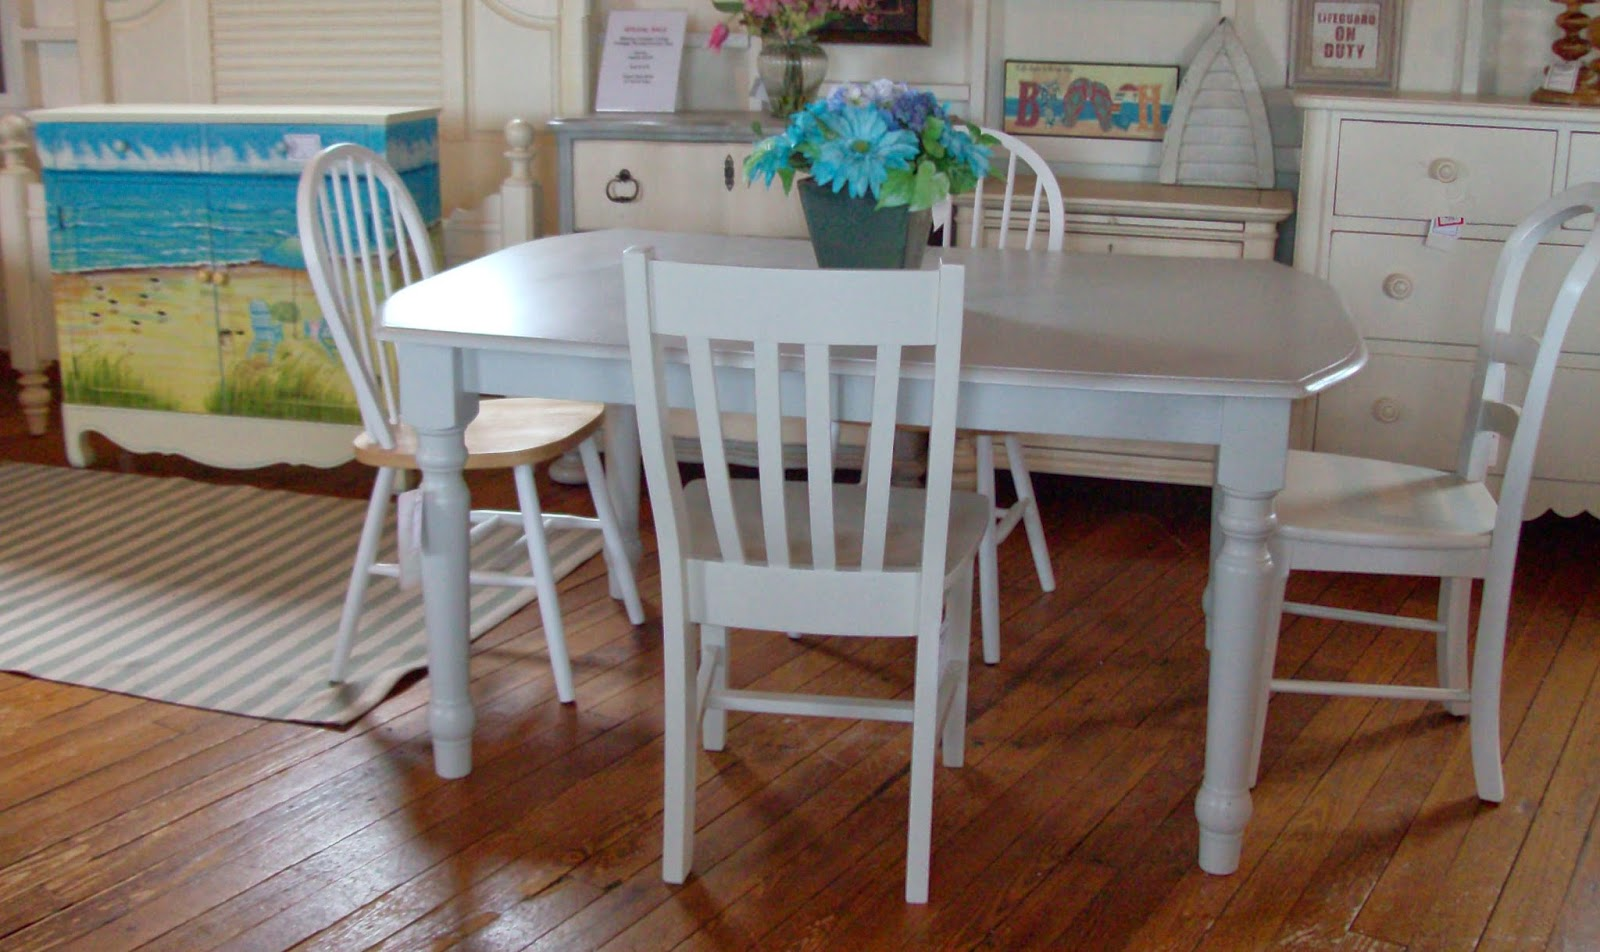 where can i buy a kitchen table carts for small kitchens hildreth 39s home goods buying